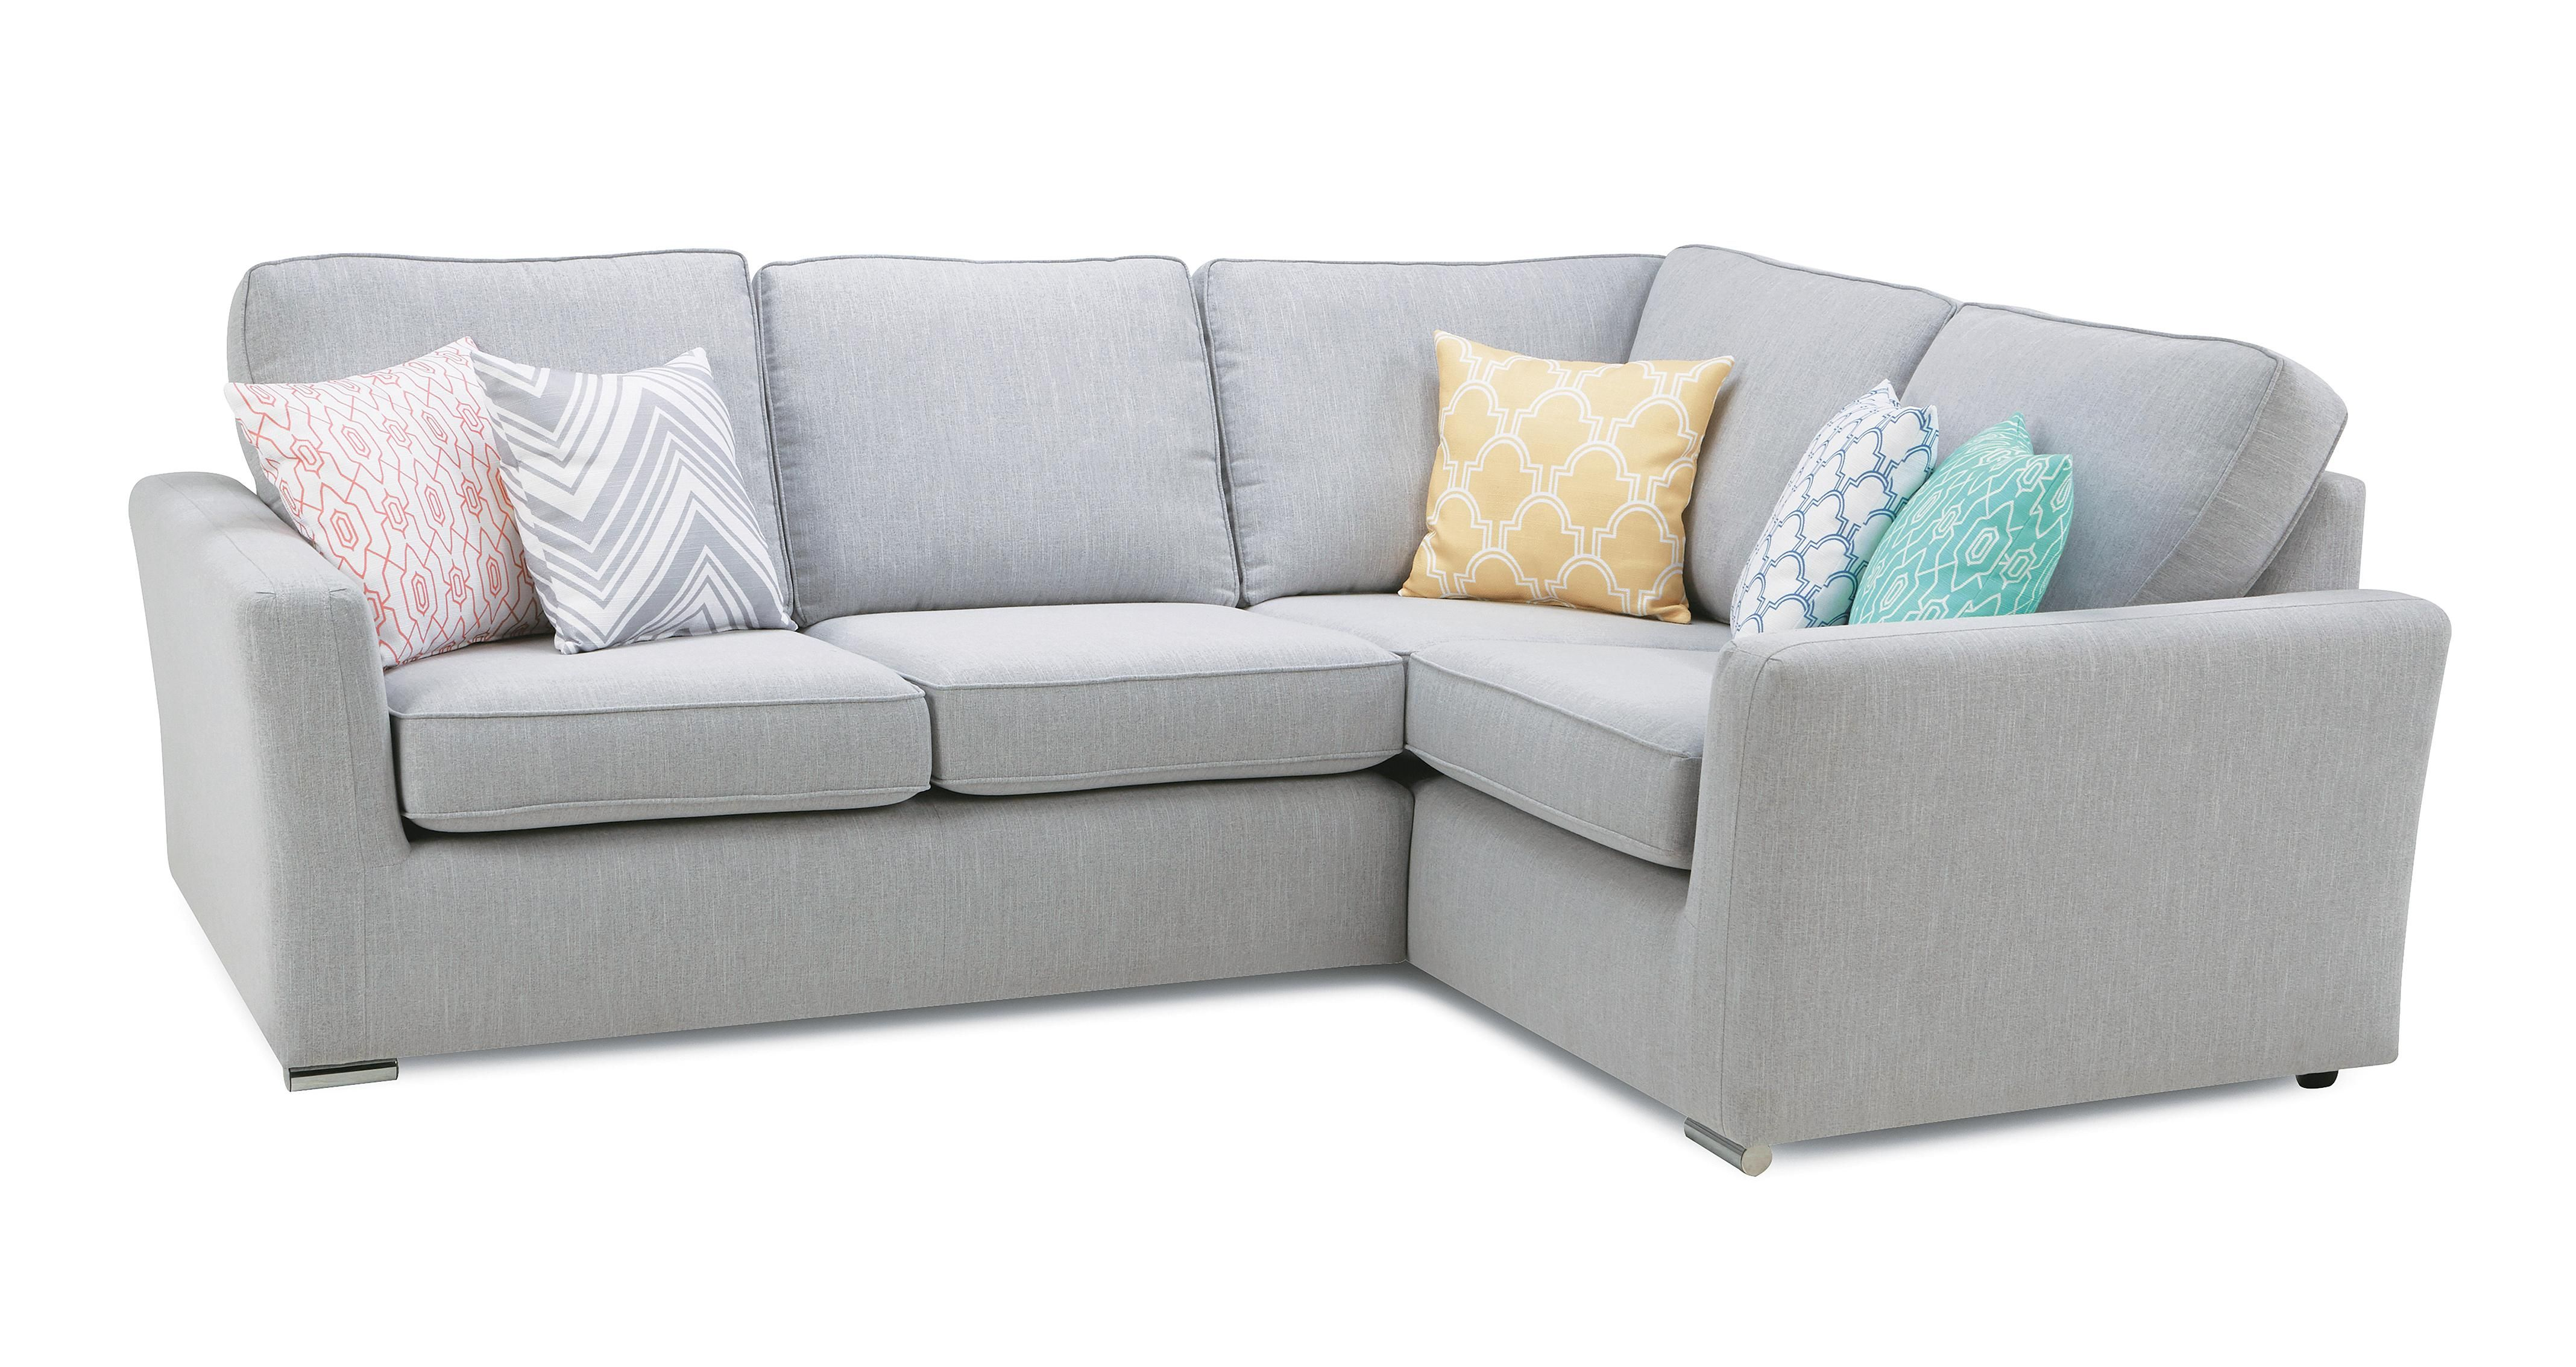 Natuzzi Sofa Harveys Lyra Left Hand Facing 2 Seater Corner Minky Dfs Lounge Ideas